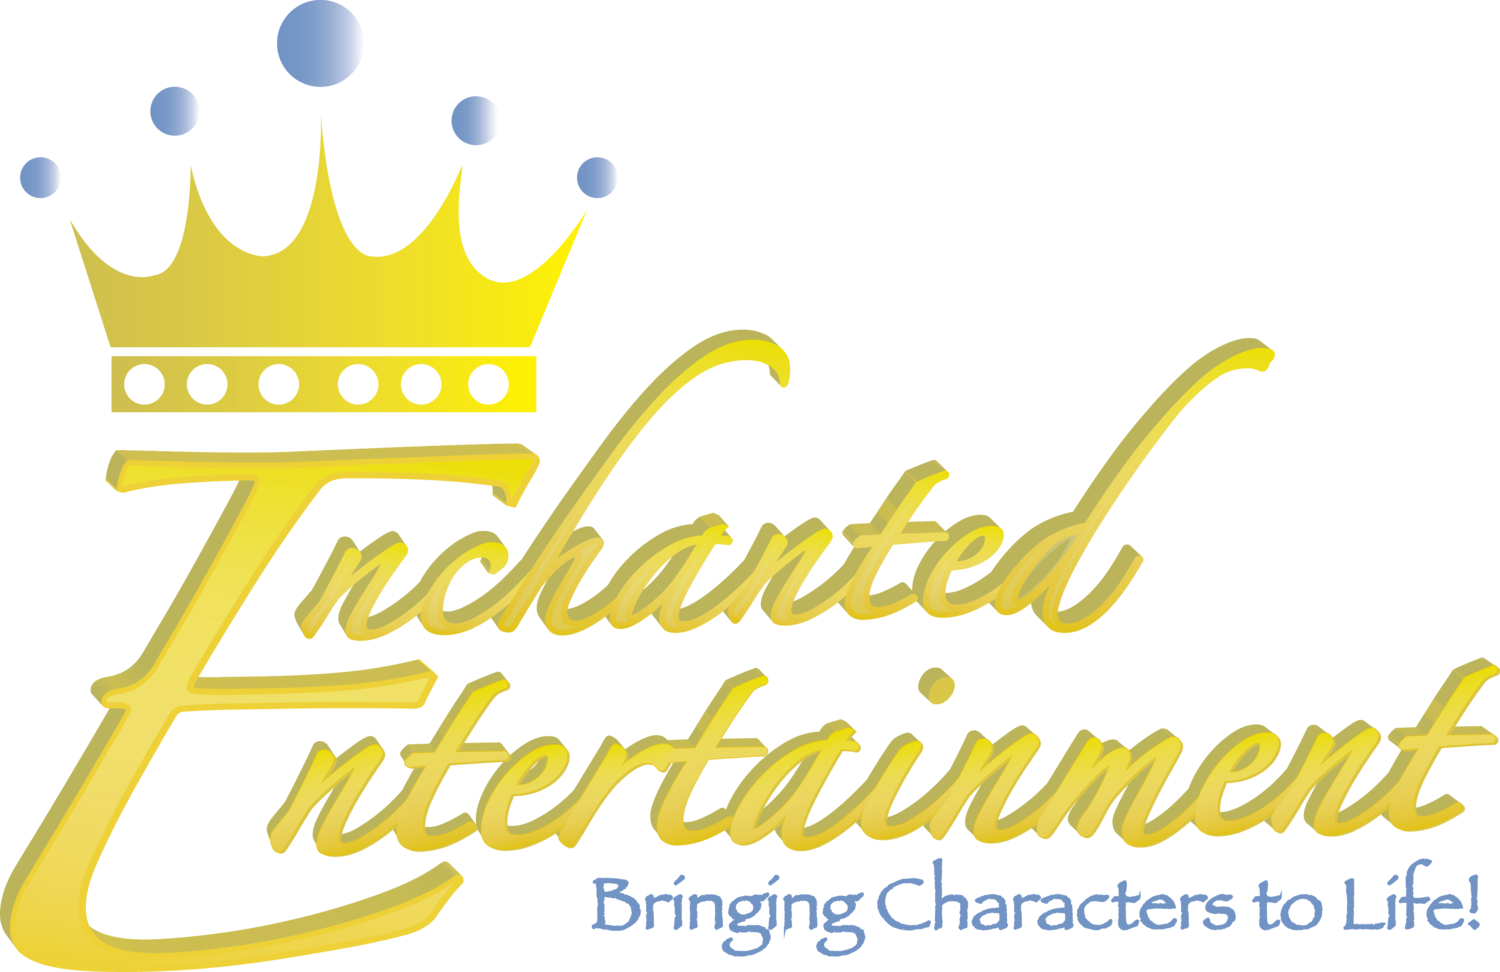 Enchanted Entertainment